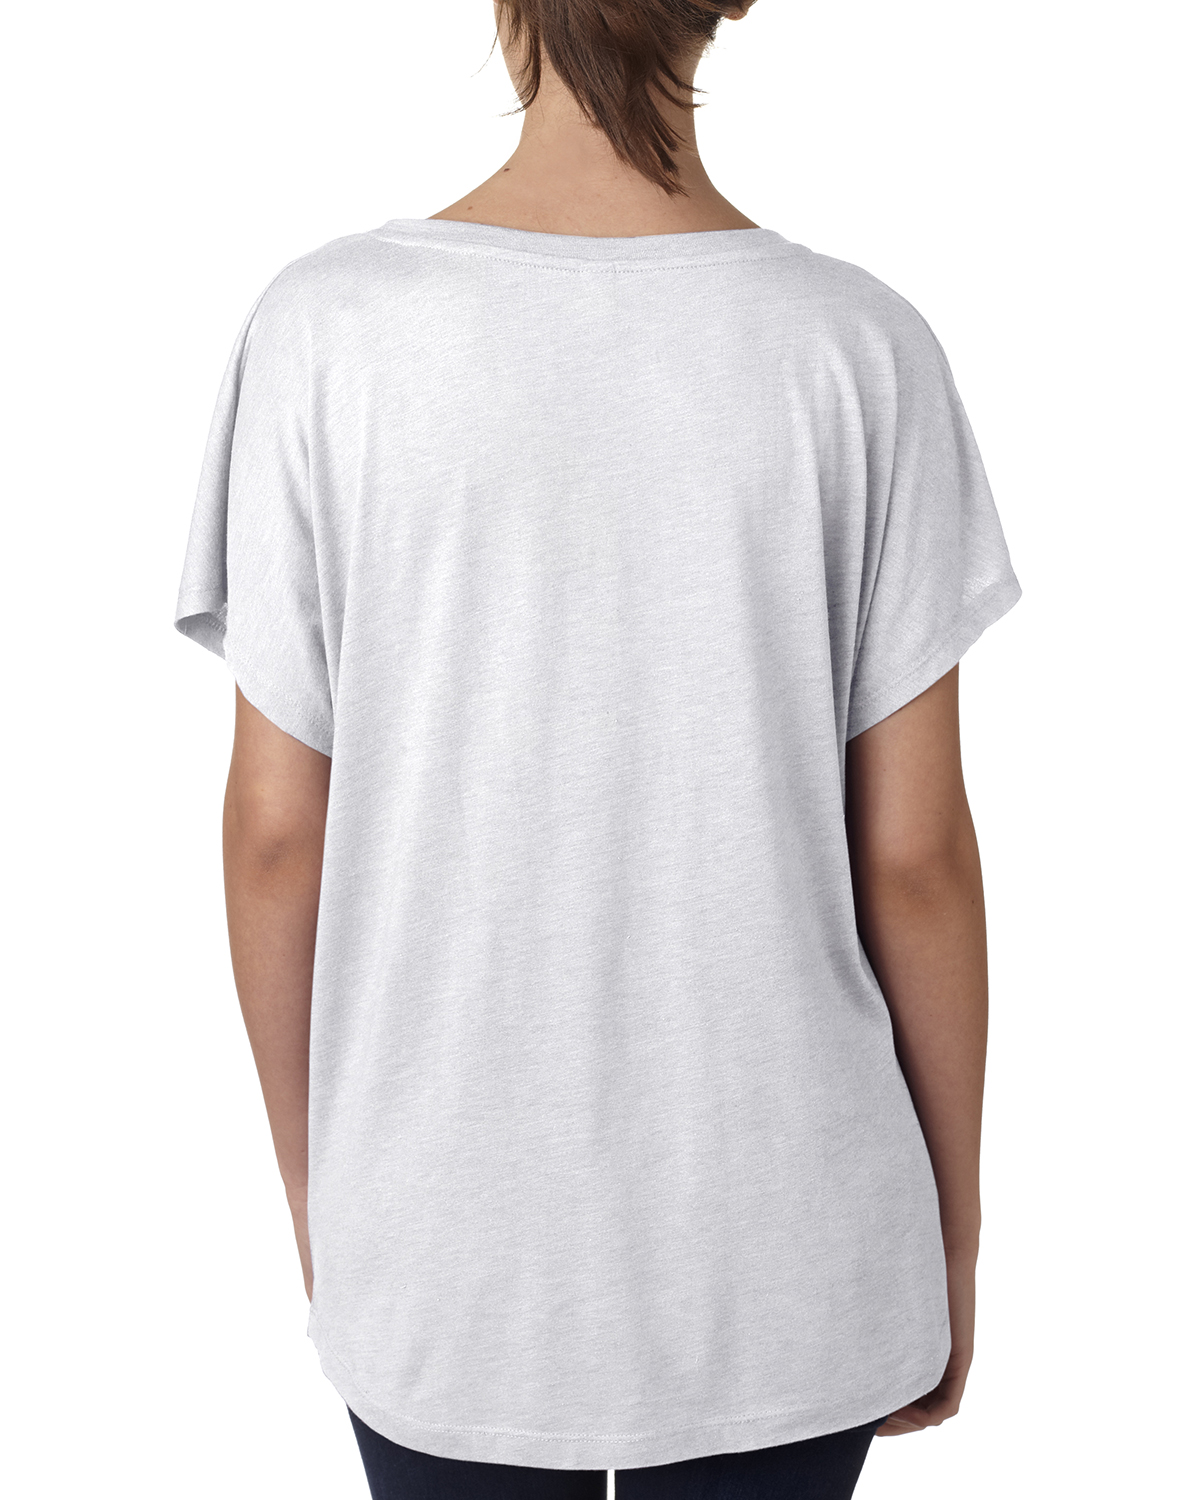 NEW-Next-Level-Junior-Fit-Triblend-Dolman-Sleeve-Relexed-Fit-T-Shirt-B-6760 thumbnail 6